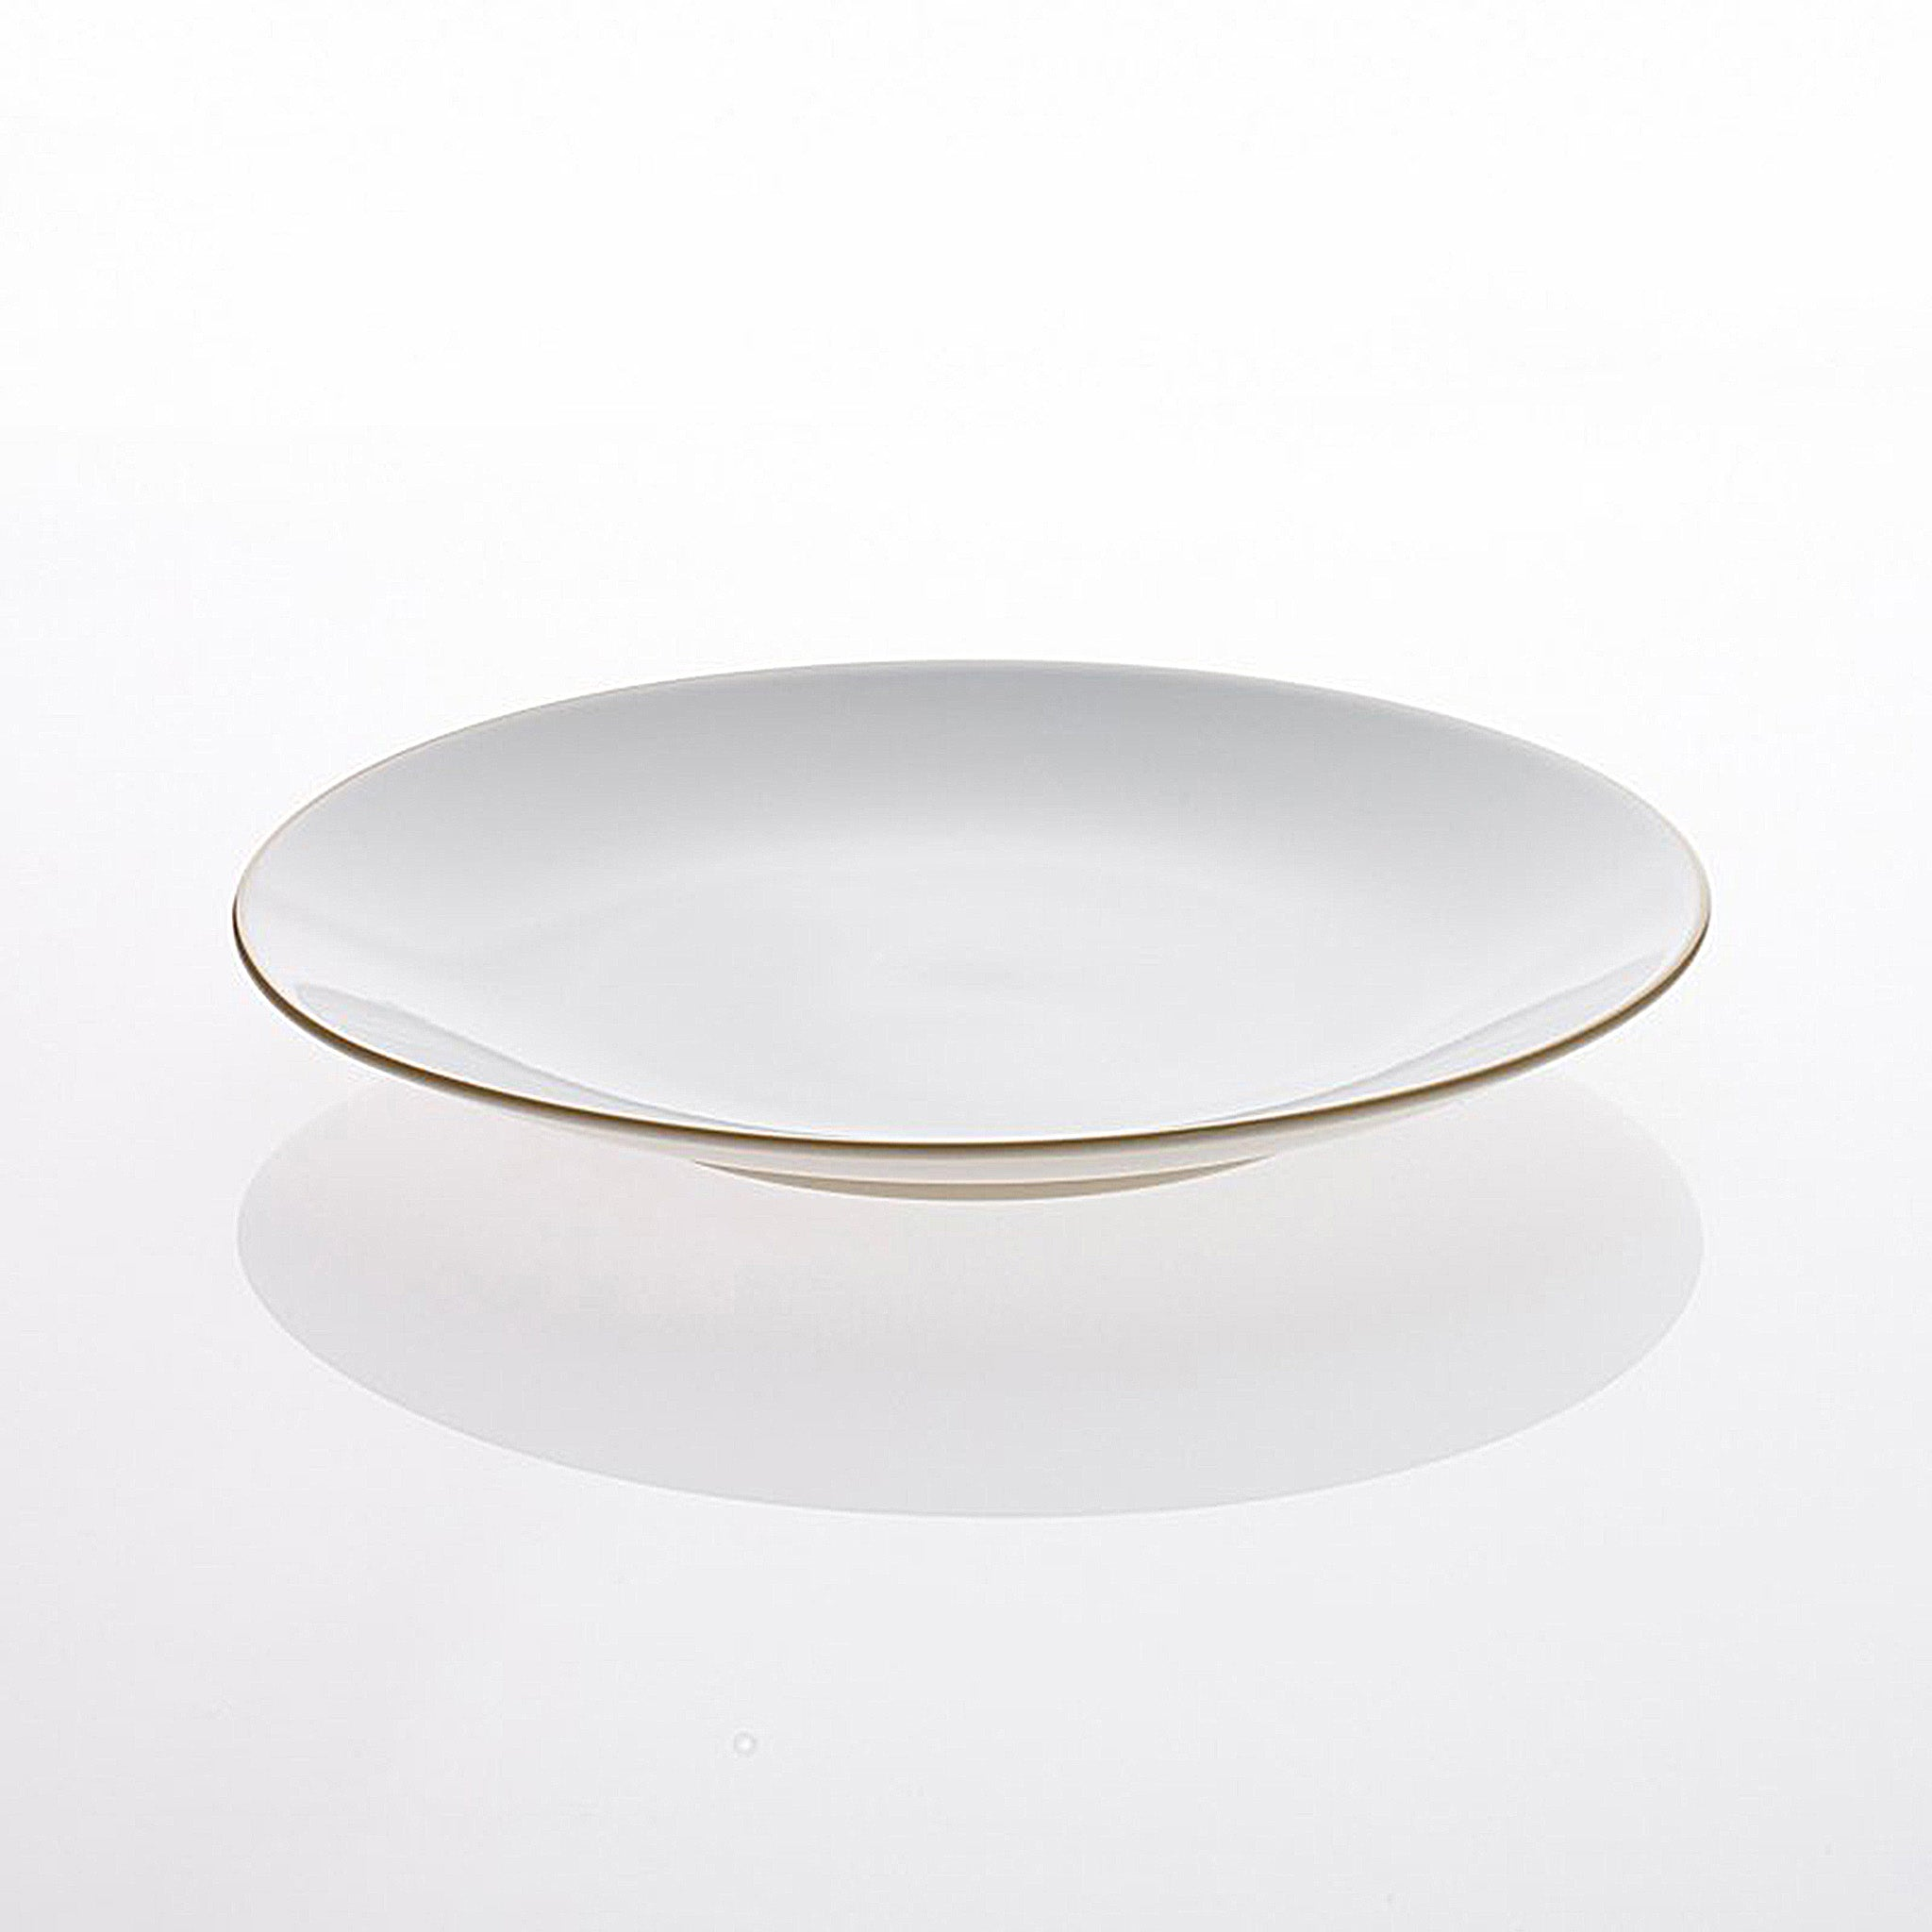 Oyyo large bone China dinner plate by Teroforma from Abode New York.